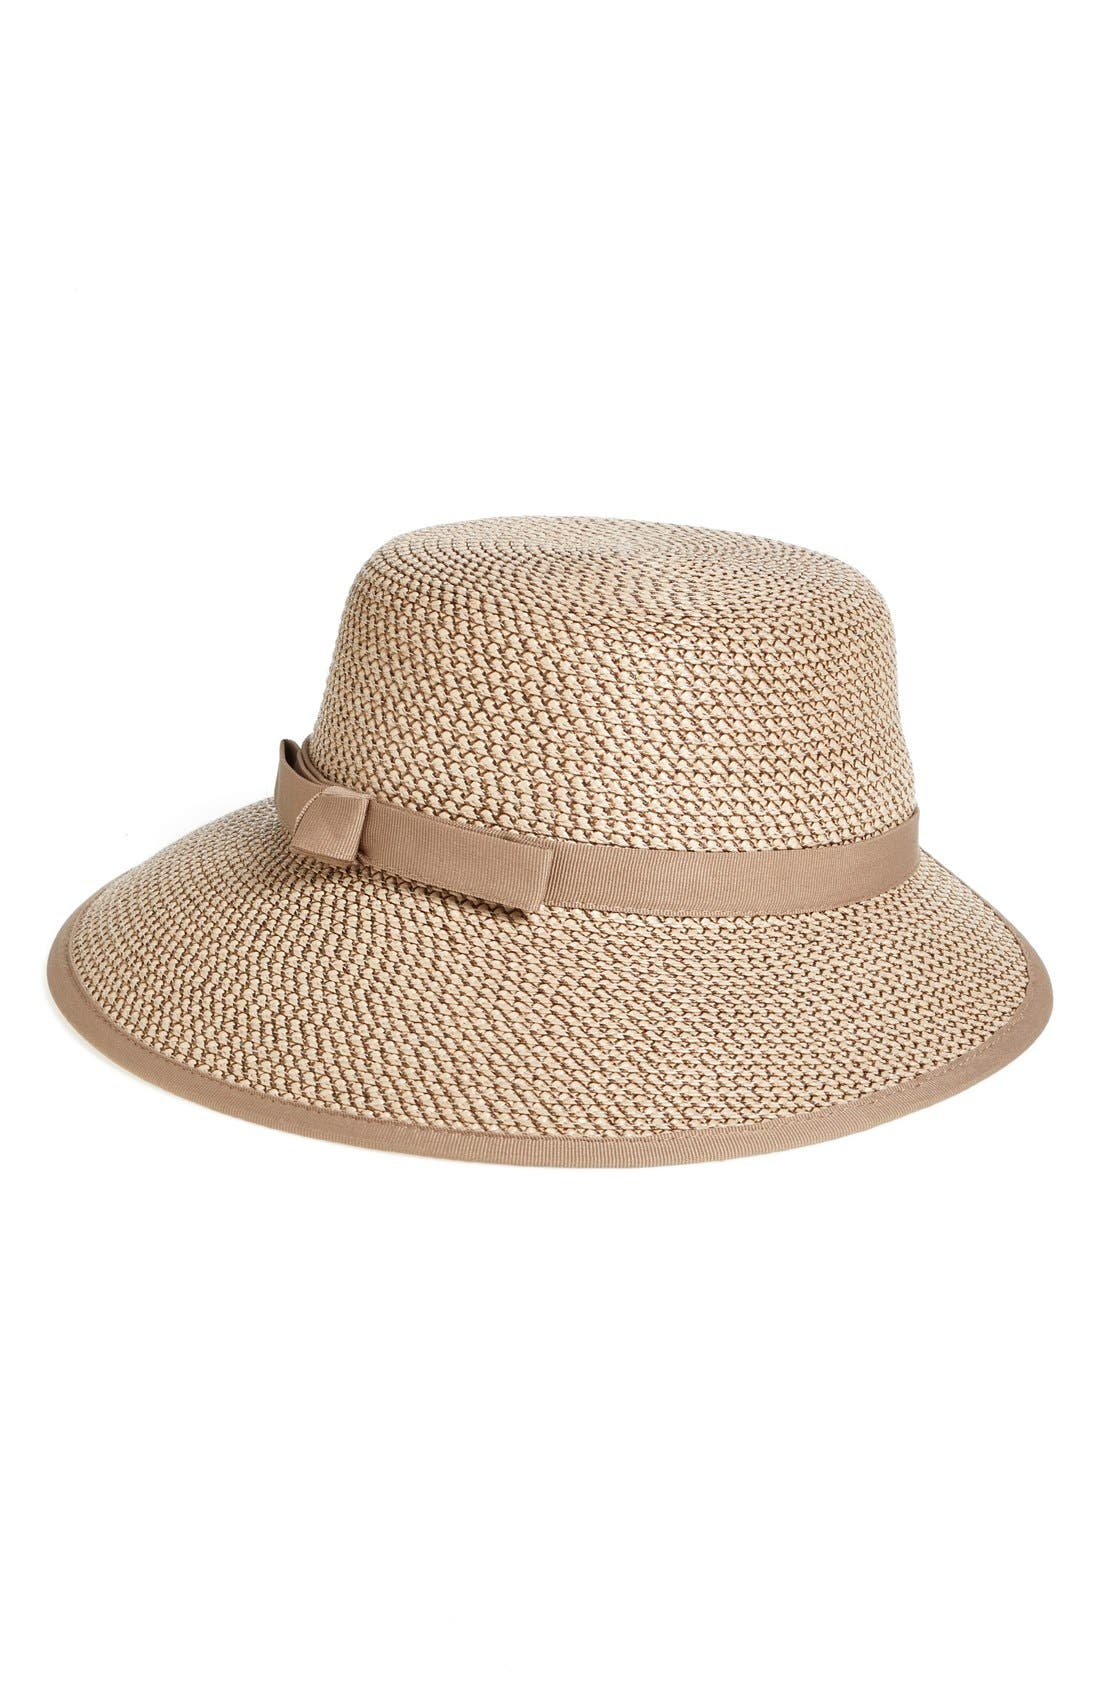 Squishee<sup>®</sup> Straw Cap,                         Main,                         color, Bark/ Brown